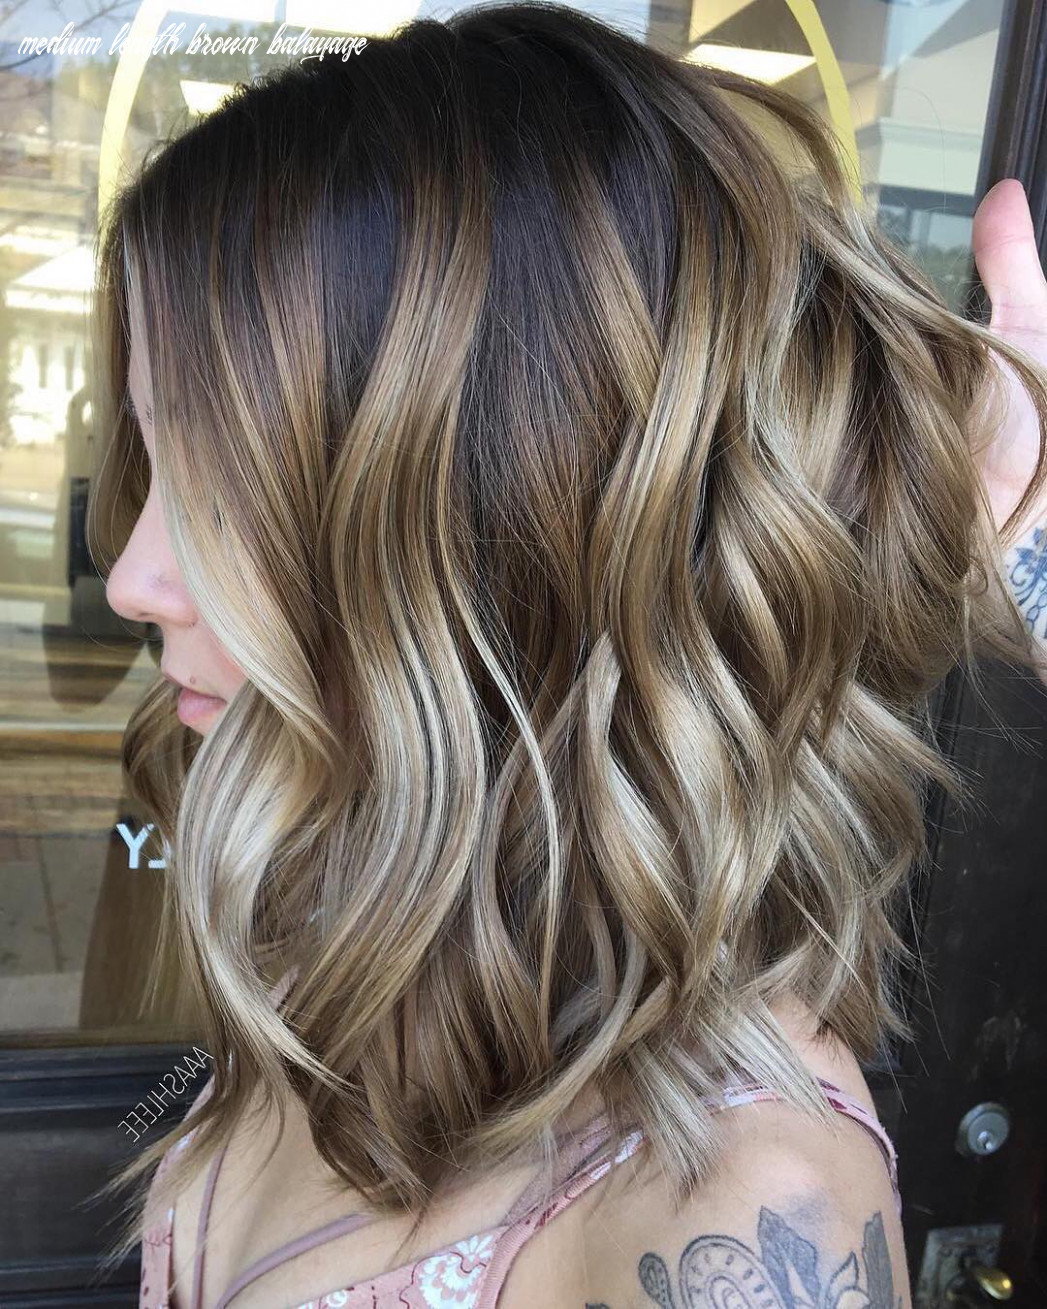 11 ombre balayage hairstyles for medium length hair, hair color 11 medium length brown balayage